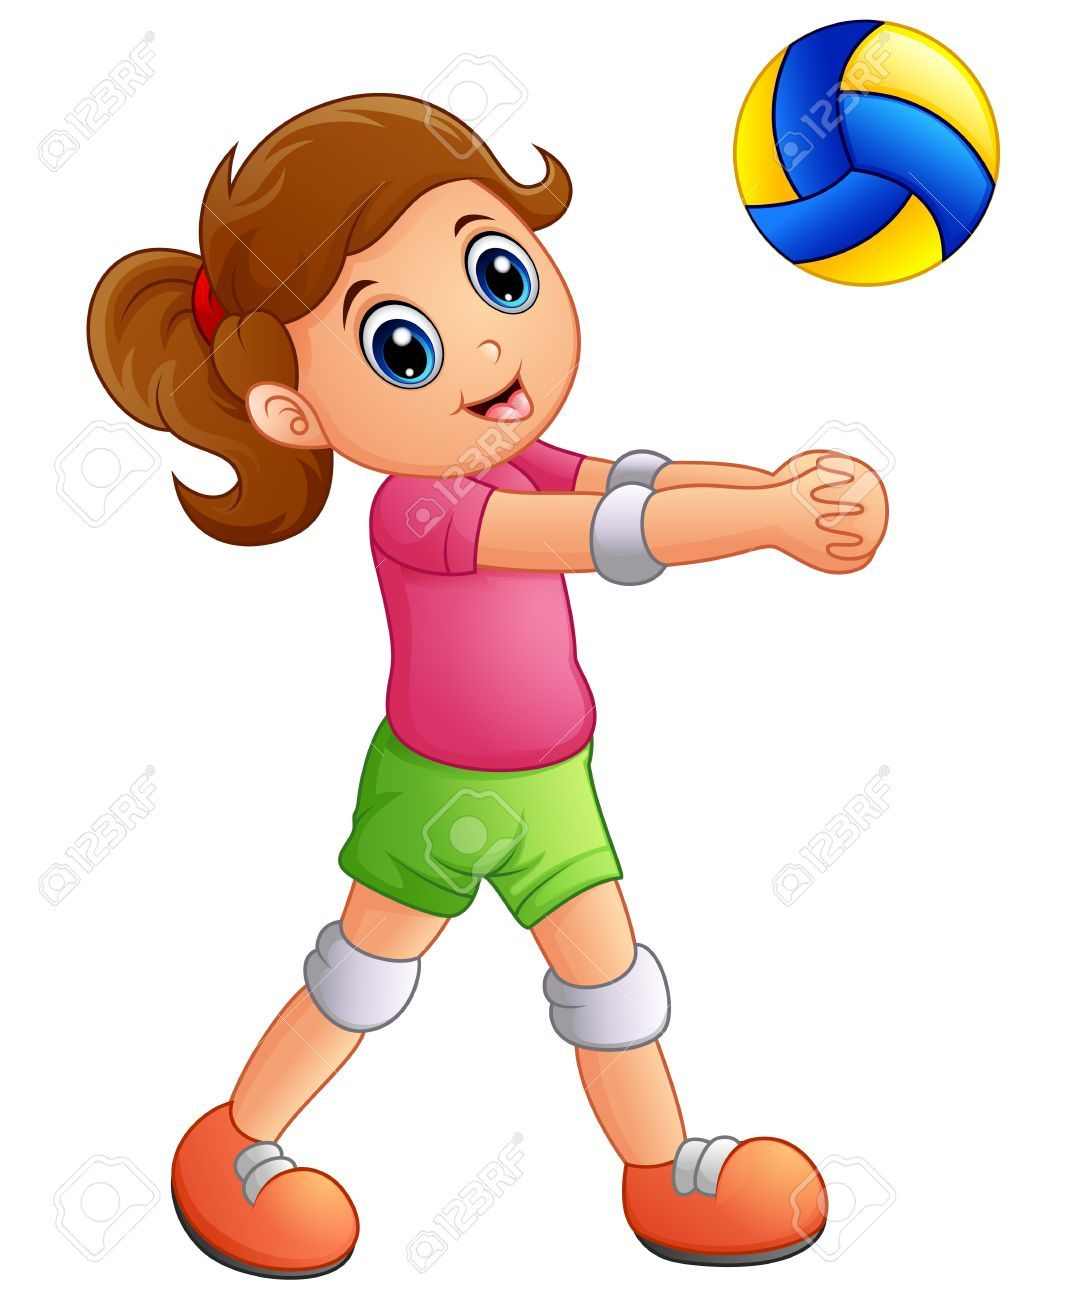 Playing volleyball clipart clip art Girl playing volleyball clipart 3 » Clipart Portal clip art